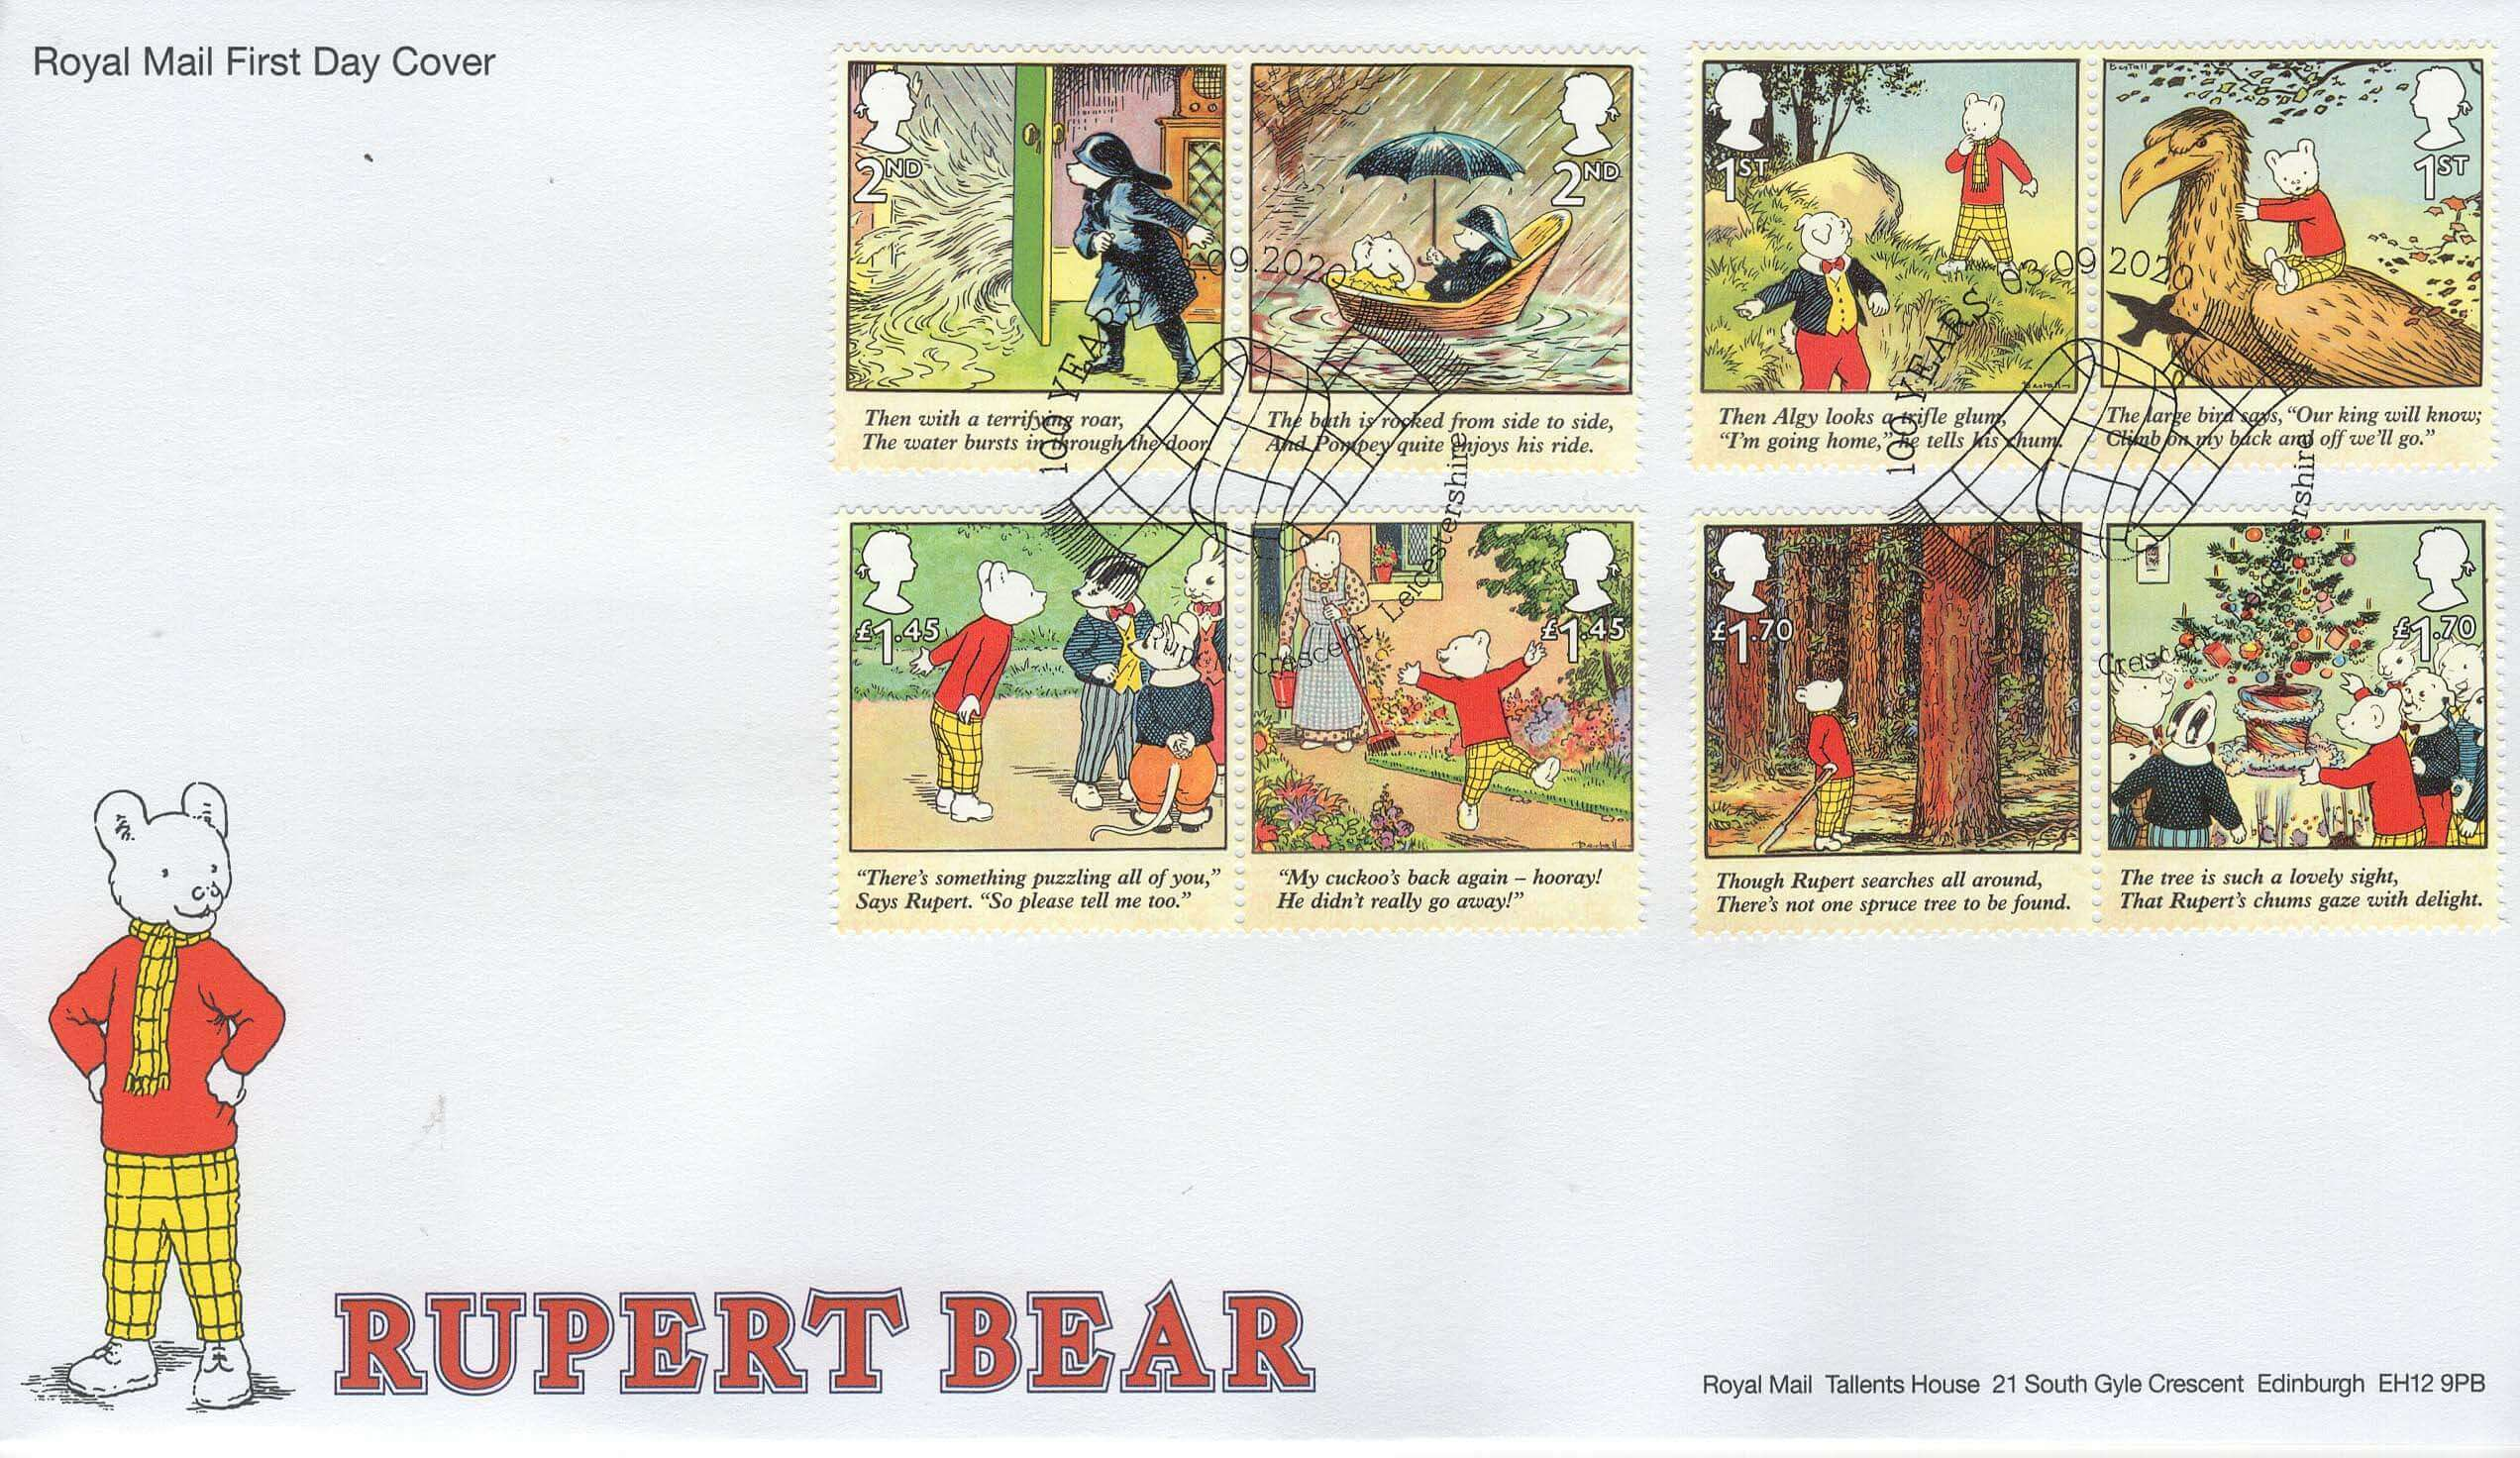 Rupert Bear Stamp First Day Cover 2020